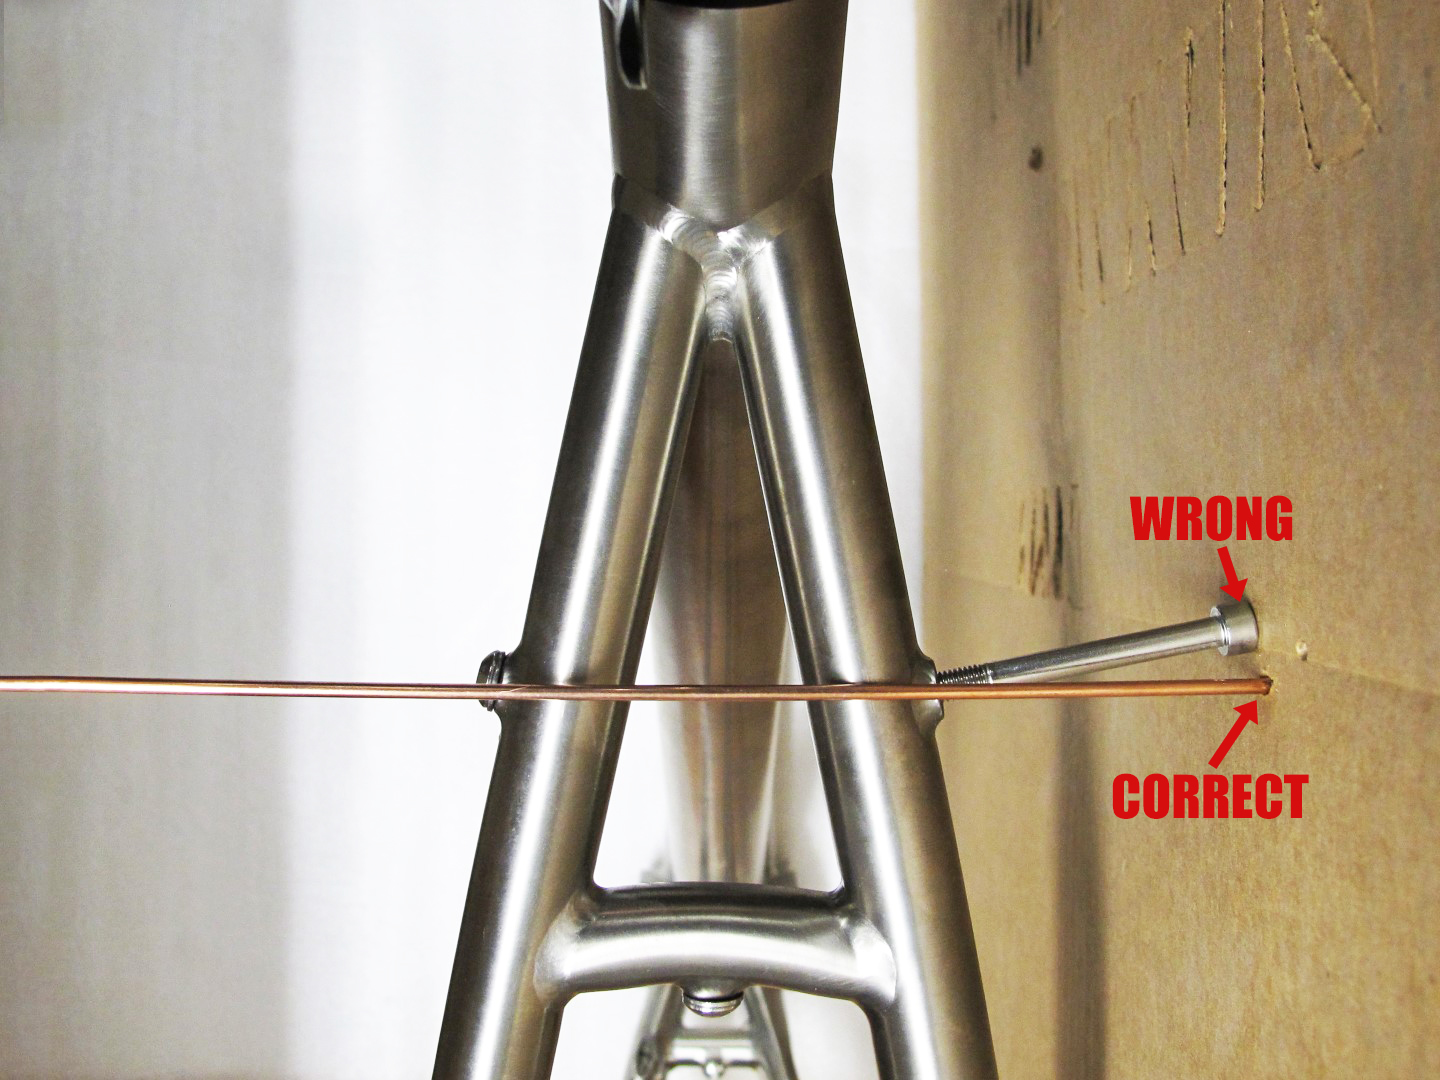 NOTE: Because upper rack mounts are generally not square with the frame center line, using a long bolt threaded into the eyelet will give an incorrect position.